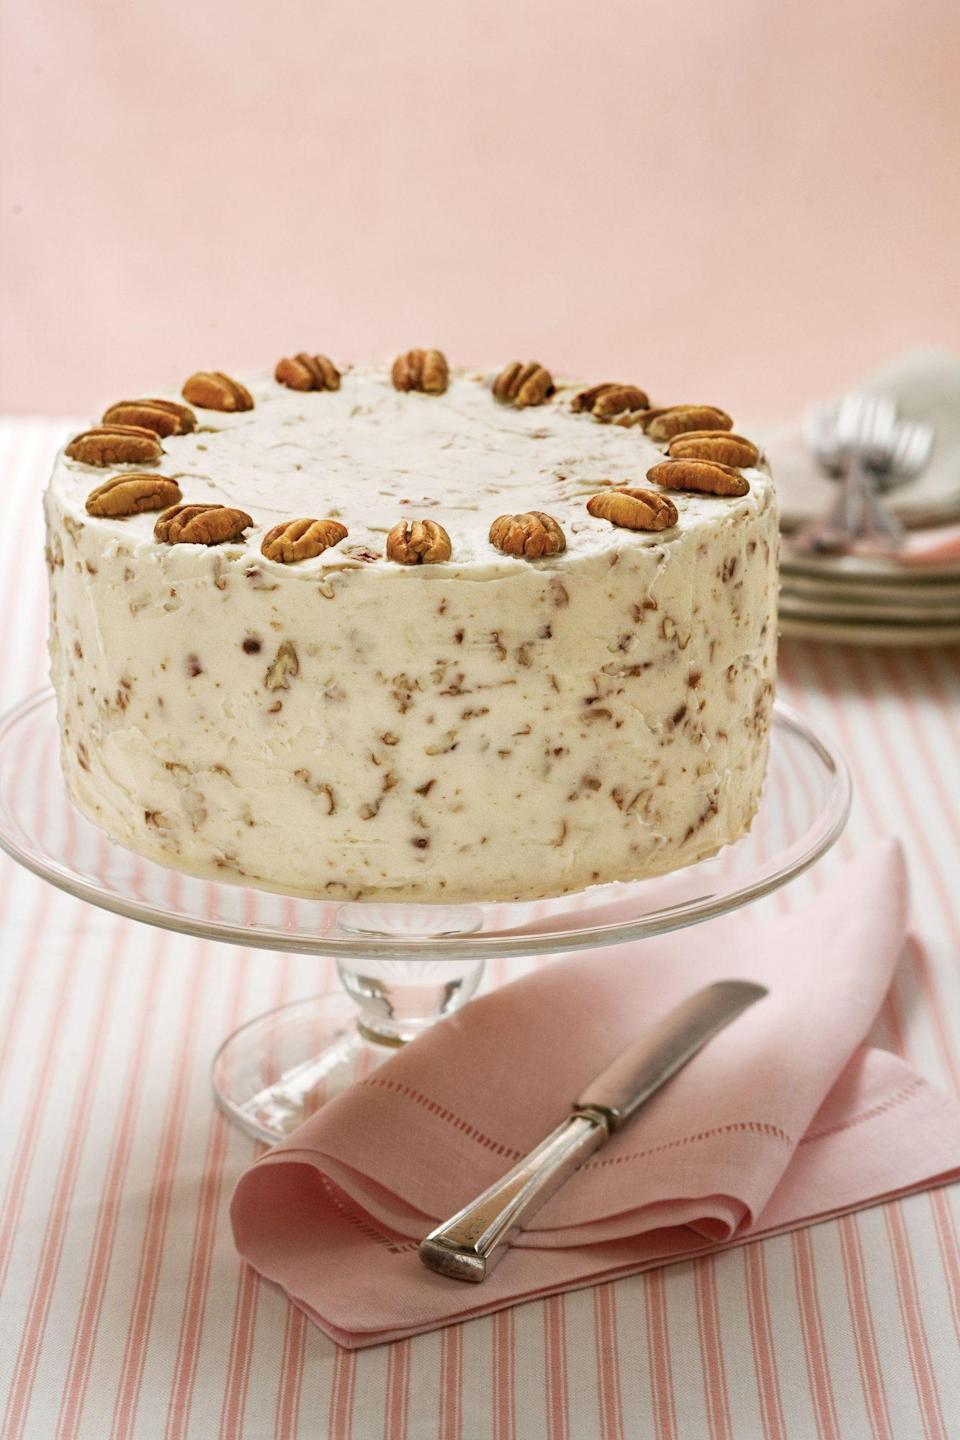 "<p><strong>Recipe: </strong><a href=""https://www.southernliving.com/syndication/italian-cream-cake-2"" rel=""nofollow noopener"" target=""_blank"" data-ylk=""slk:Italian Cream Cake"" class=""link rapid-noclick-resp""><strong>Italian Cream Cake</strong></a></p> <p>This old-fashioned cake recipe has been a reader go-to for decades, whether for birthdays or holidays. One reader who hadn't baked it in a while said, ""I forgot how truly delicious this cake is.""</p>"